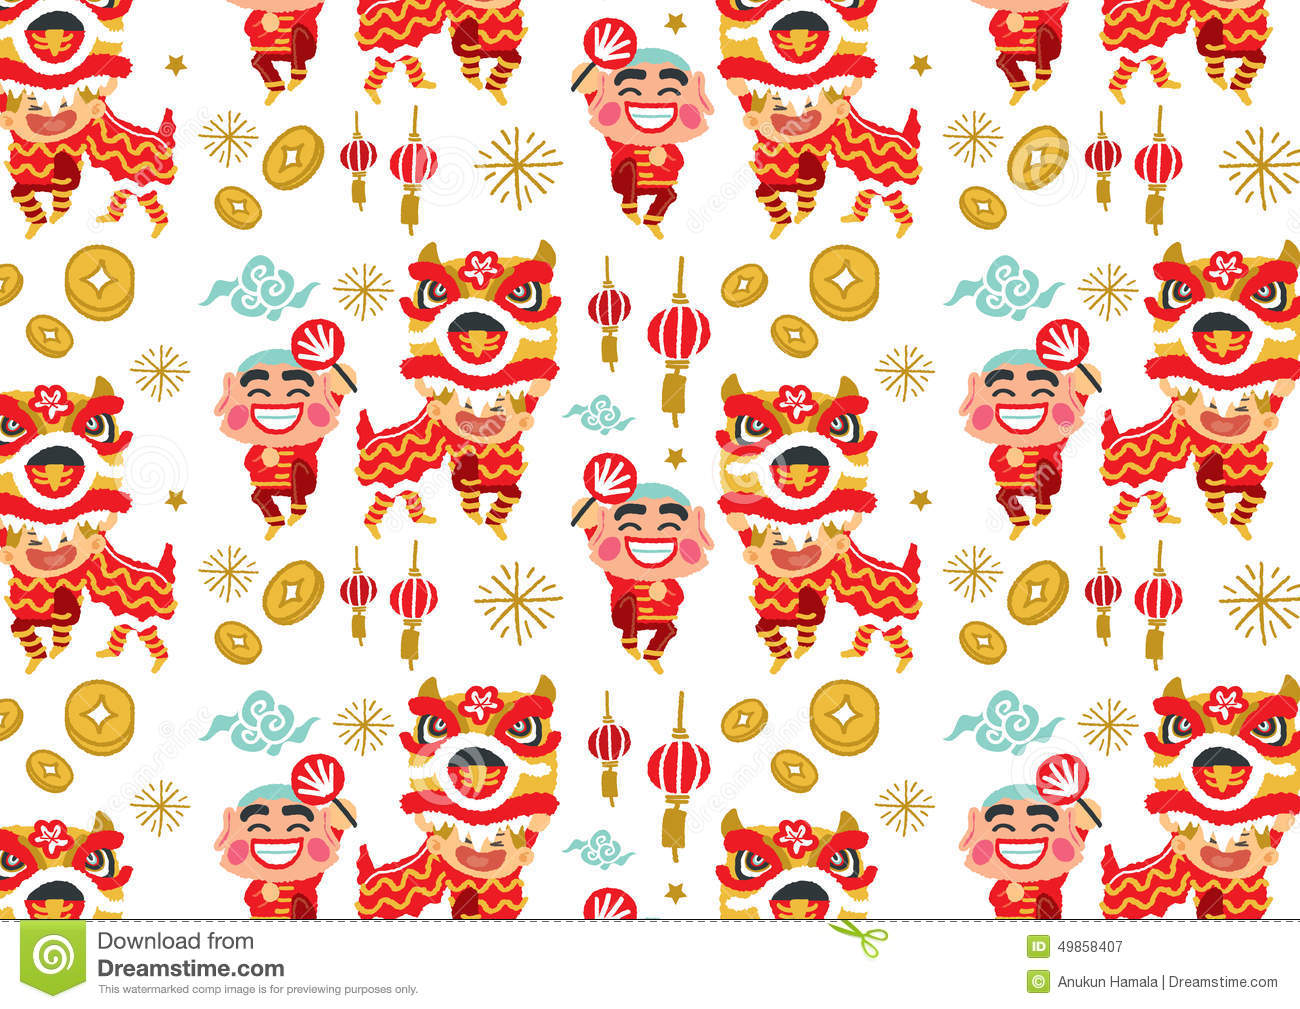 Lion dancing and chinese new year royalty free cliparts, vectors.